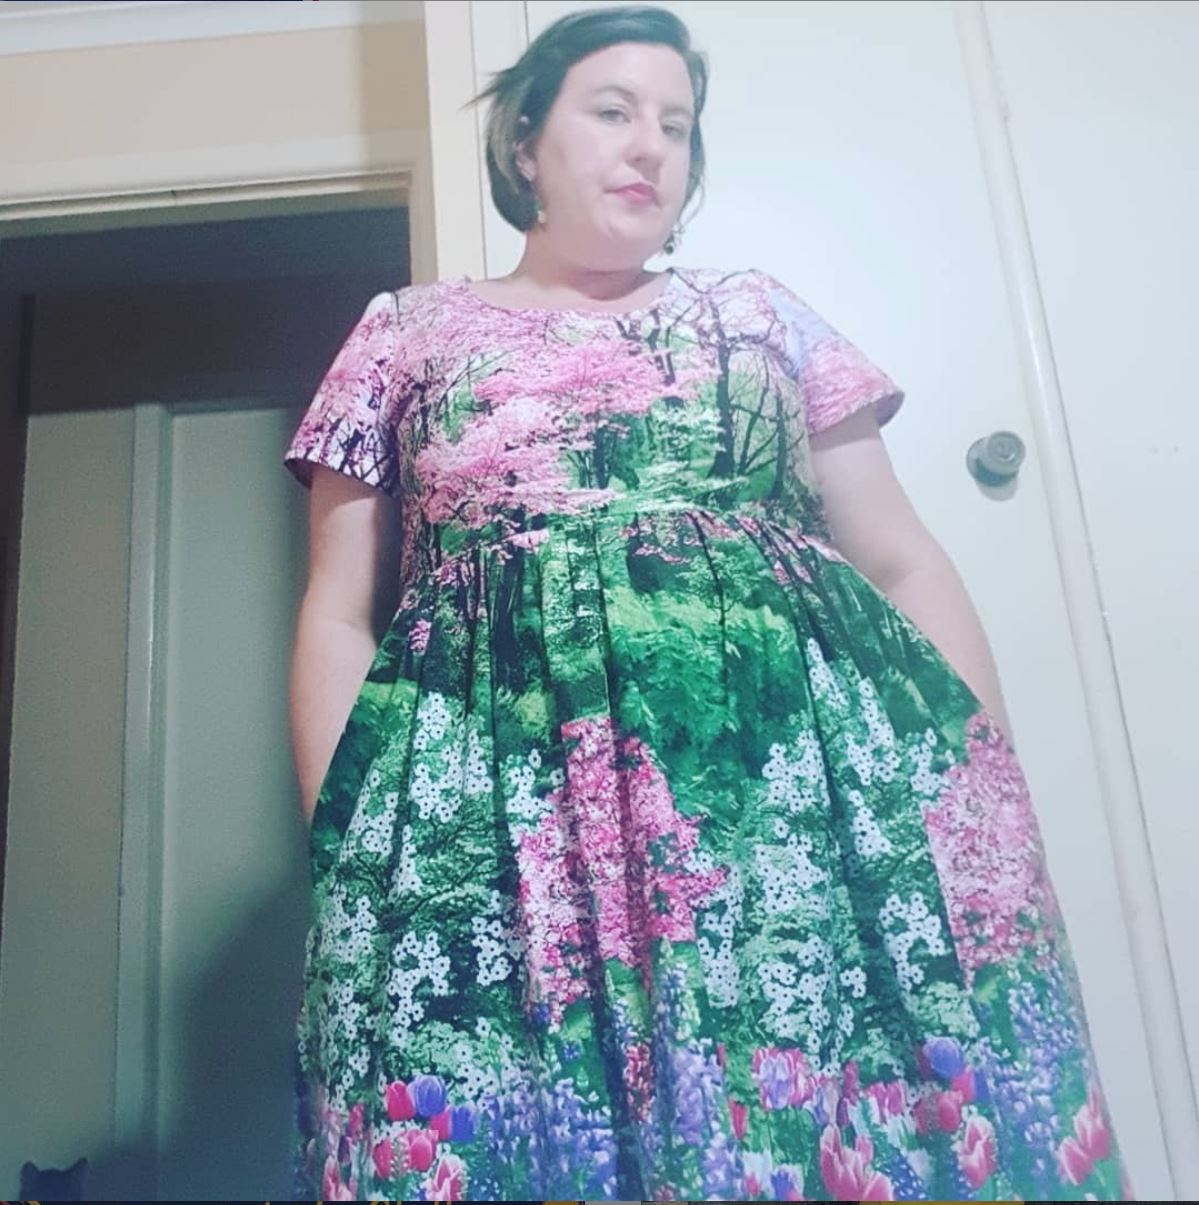 Pink and green dress with flower scene on it